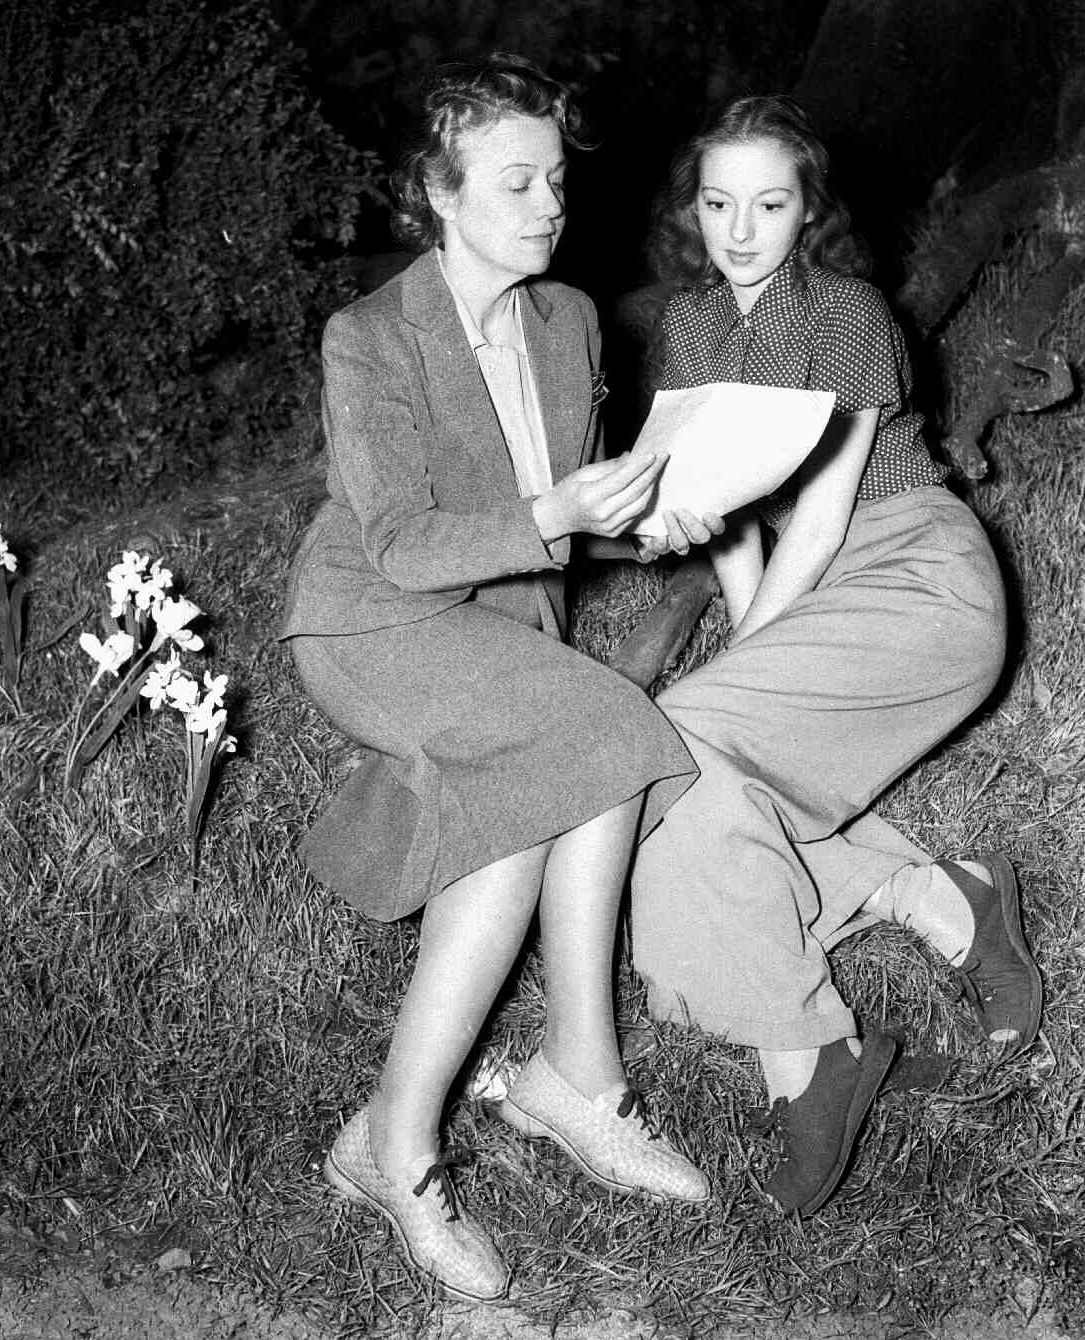 Technical Advisor Susan Myrick and Evelyn Keyes, Suellen O'Hara, on the set of Gone with the Wind in 1939.